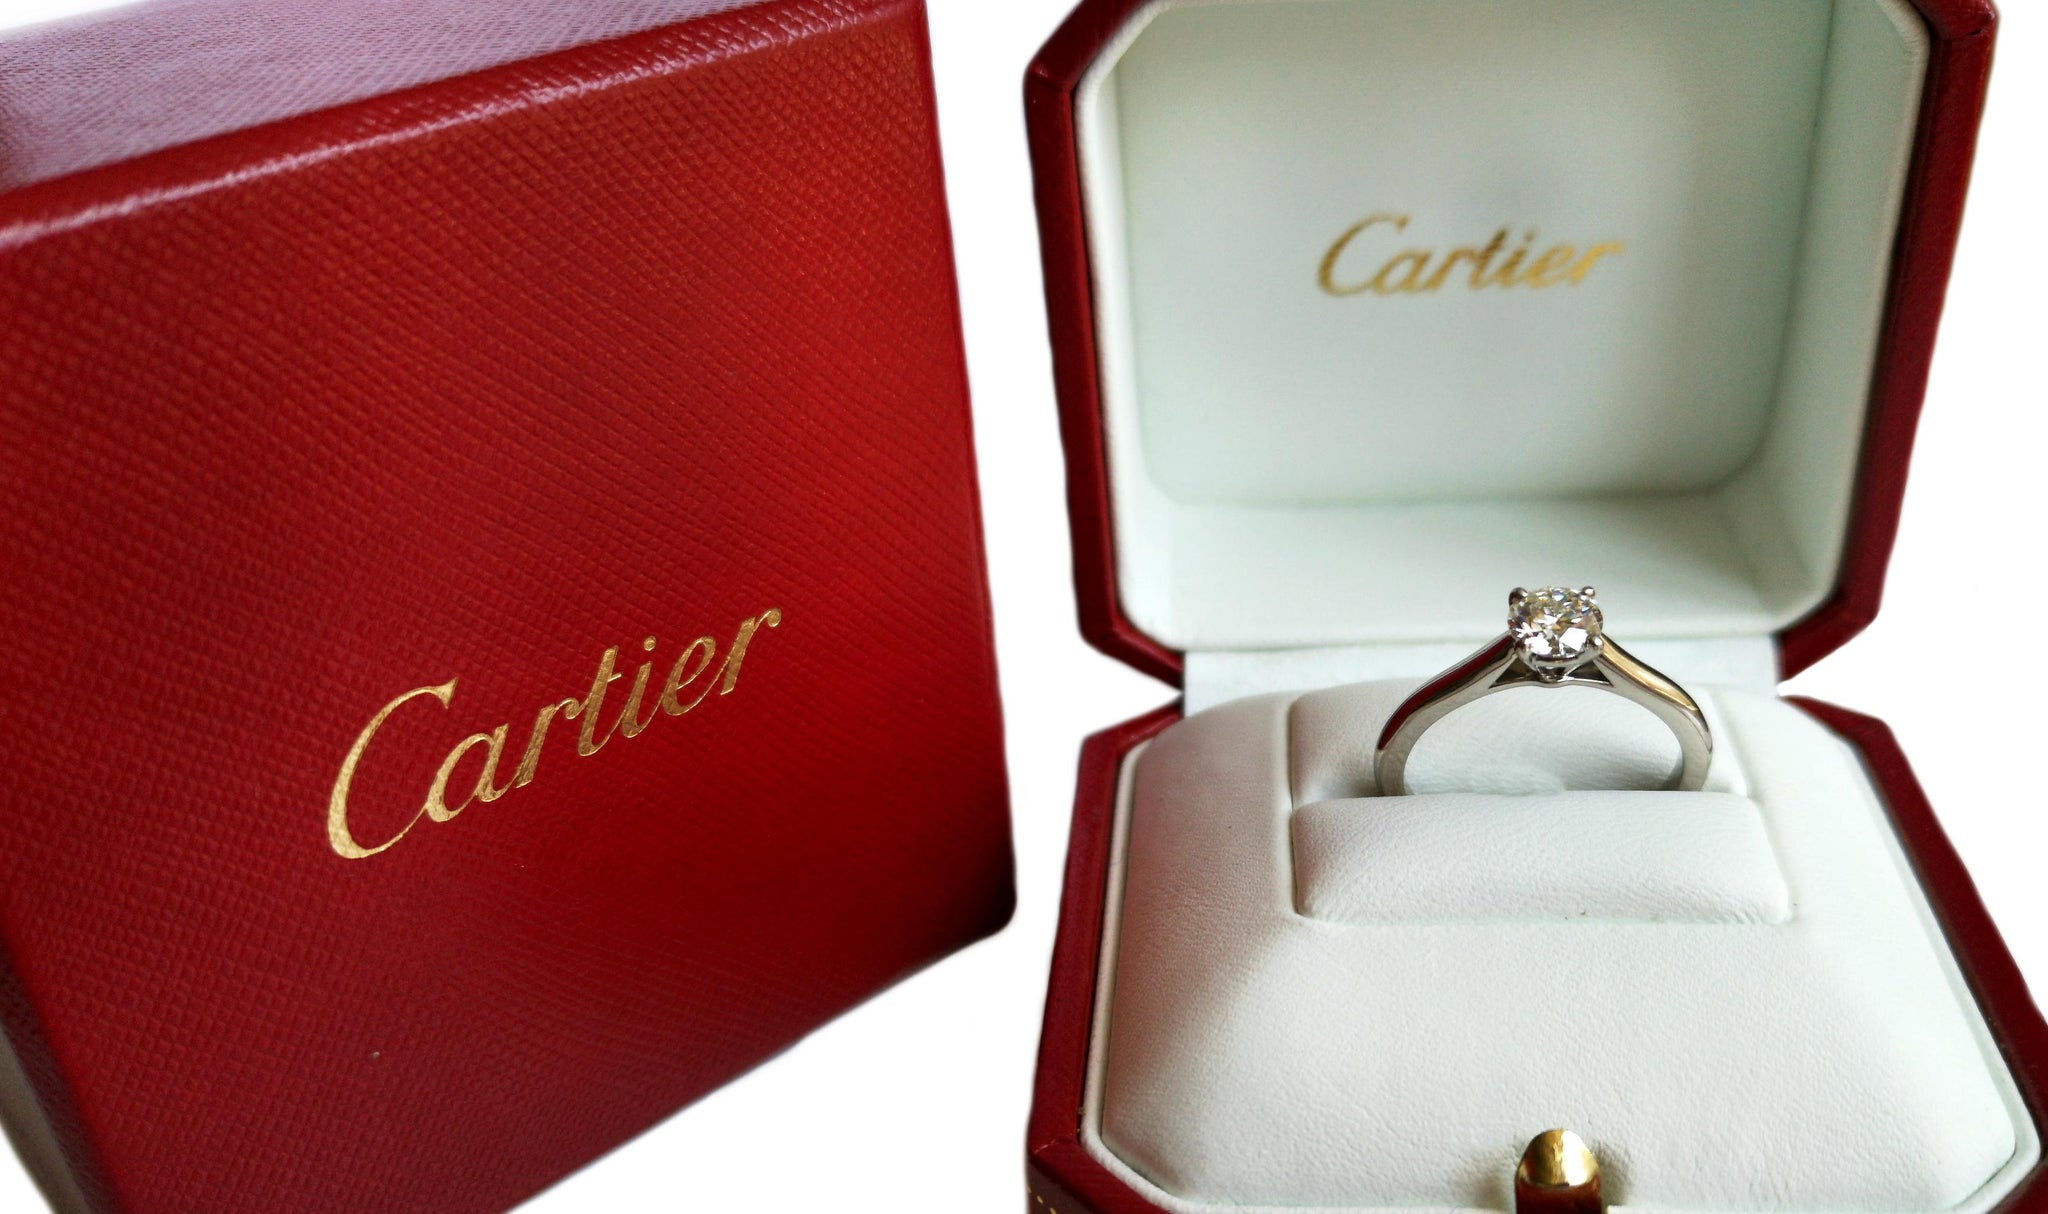 Cartier 1895 0.76ct H/VVS1 Triple XXX Round Brilliant Cut Diamond Engagement Ring